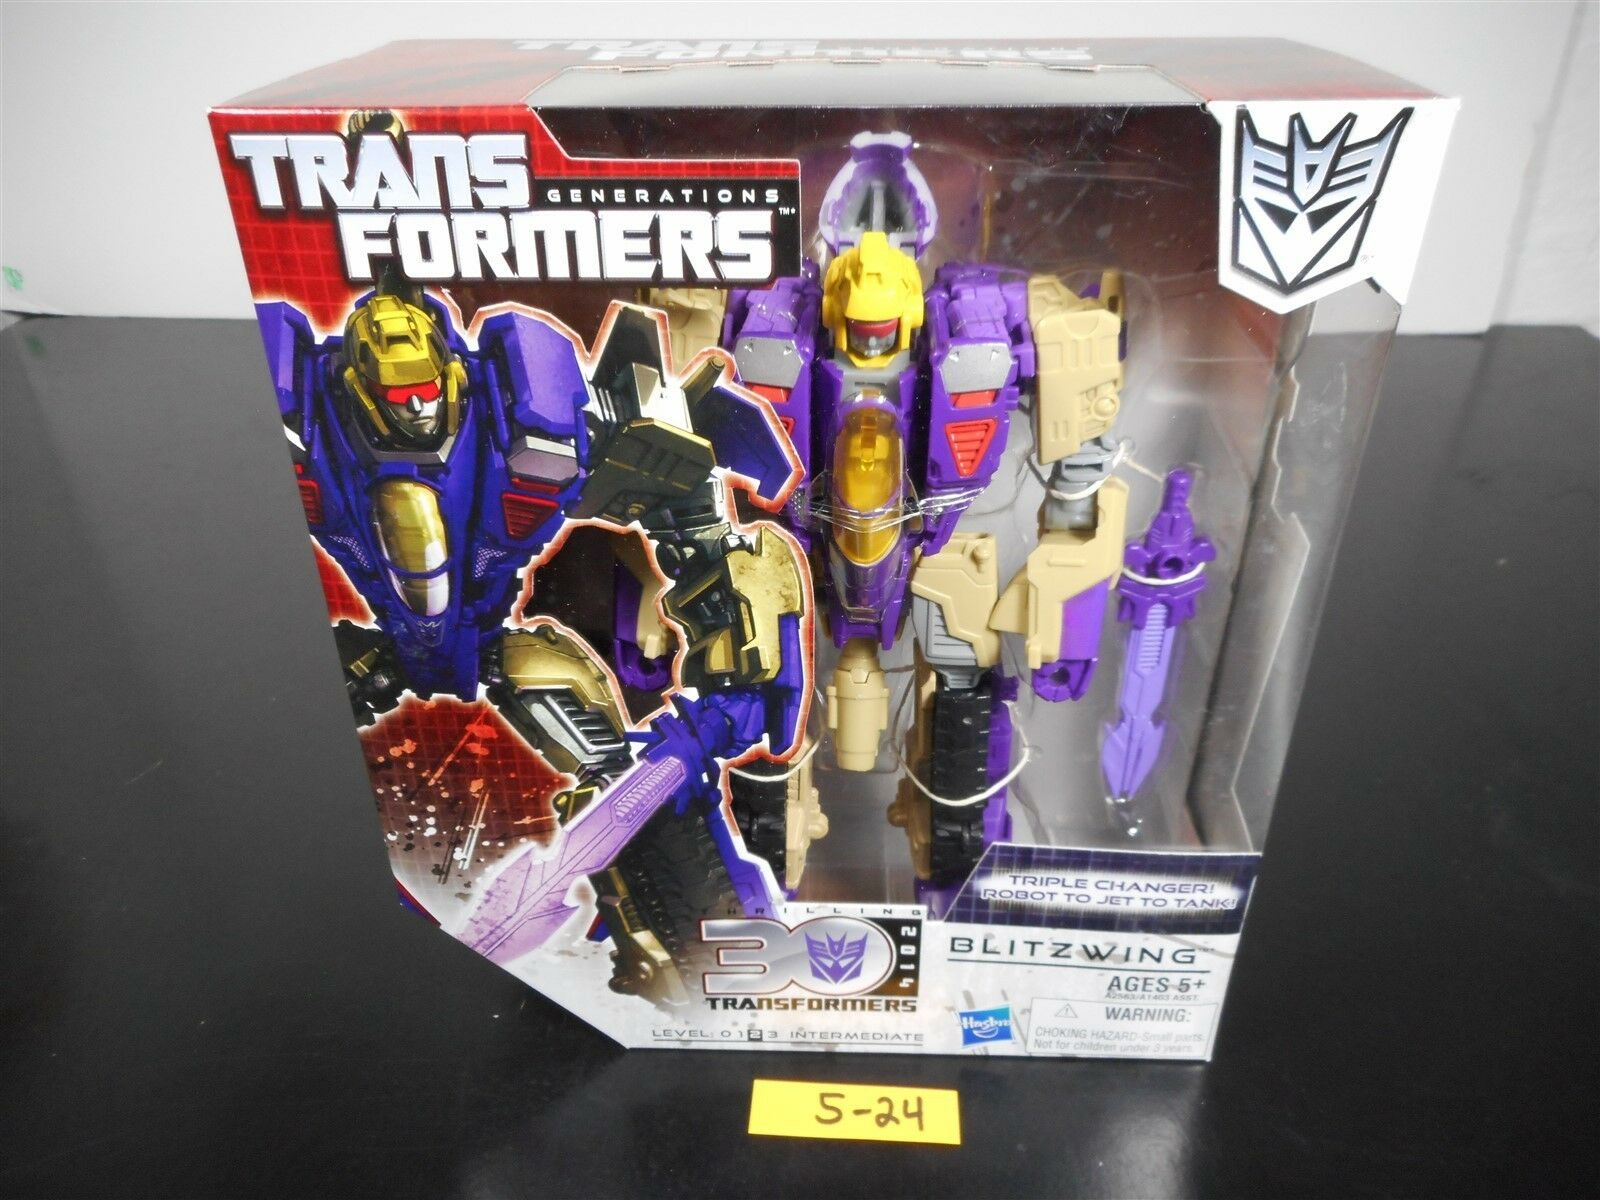 NEW & SEALED  TRANSFORMERS GENERATIONS BLIZTWING ACTION FIGURE THIRLLING 30 5-24